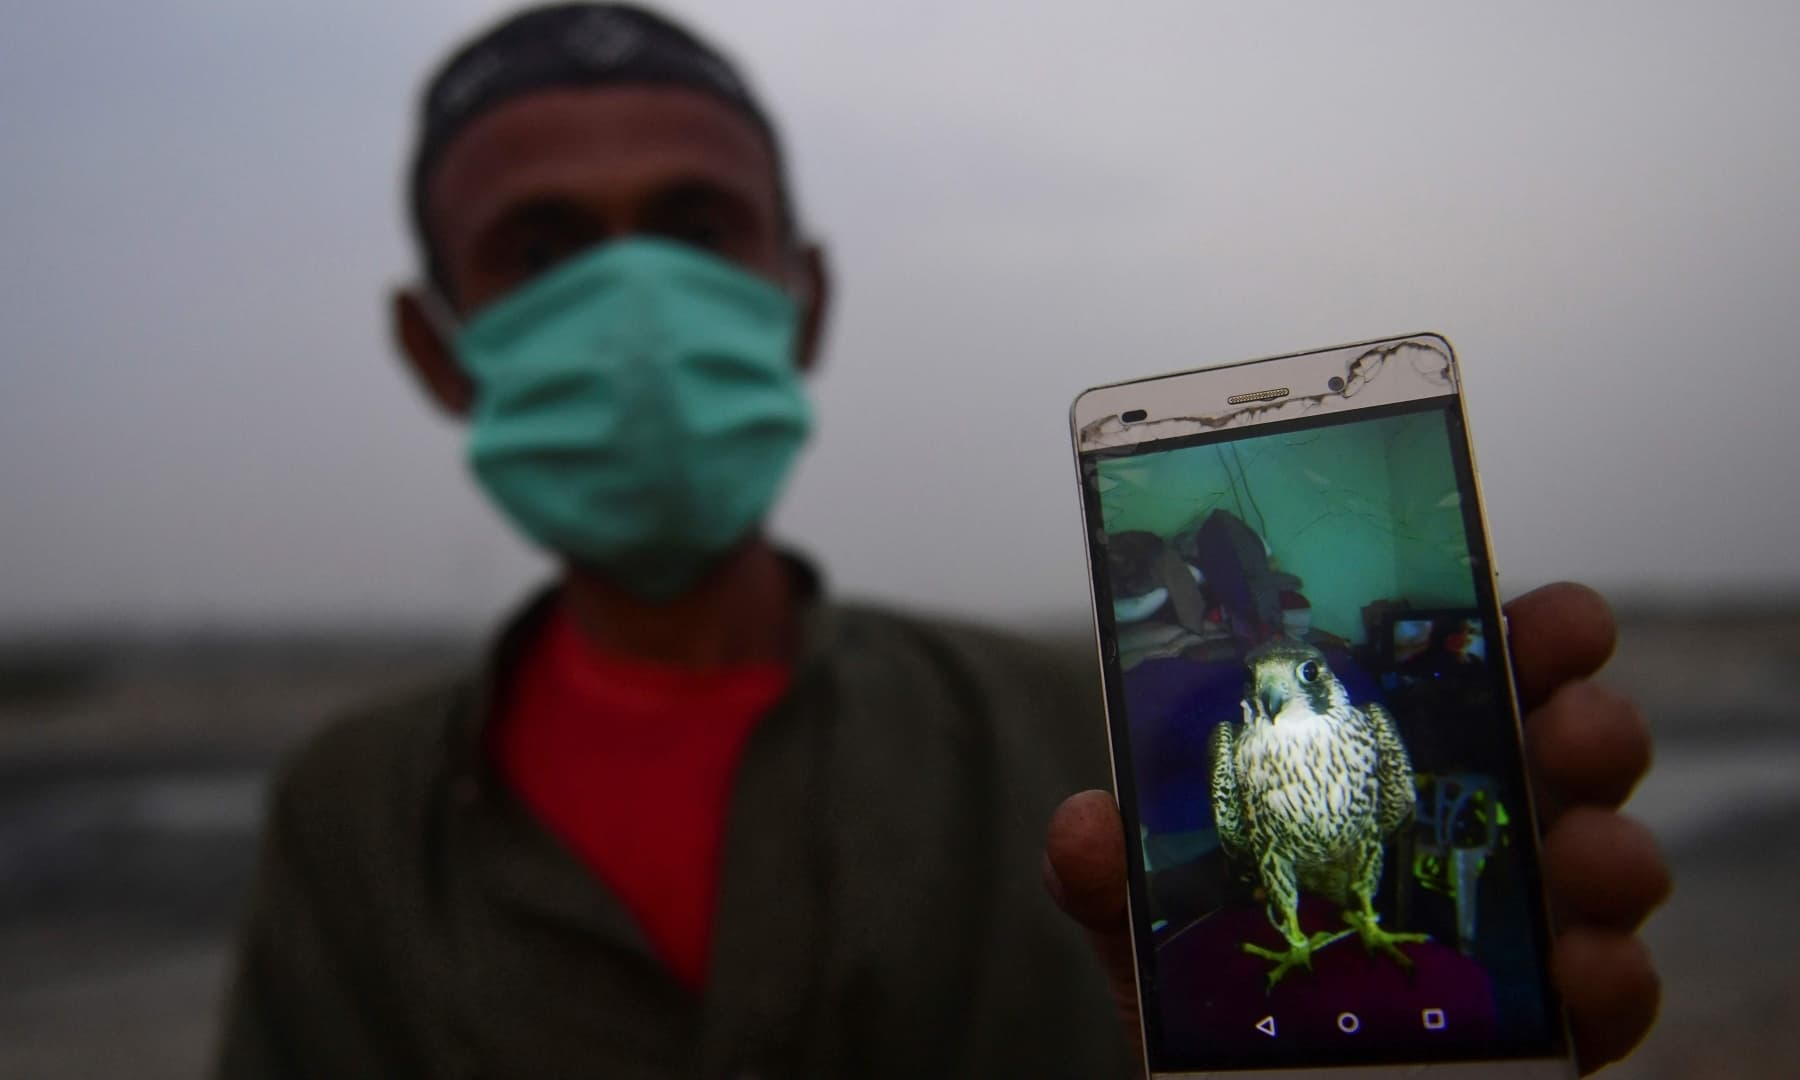 In this November 24, 2020, photo, poacher Muhammad Rafiq shows a picture on his mobile phone of a falcon he sold at a black market, in the coastal village of Ibrahim Hyderi on the outskirts of Karachi. — AFP